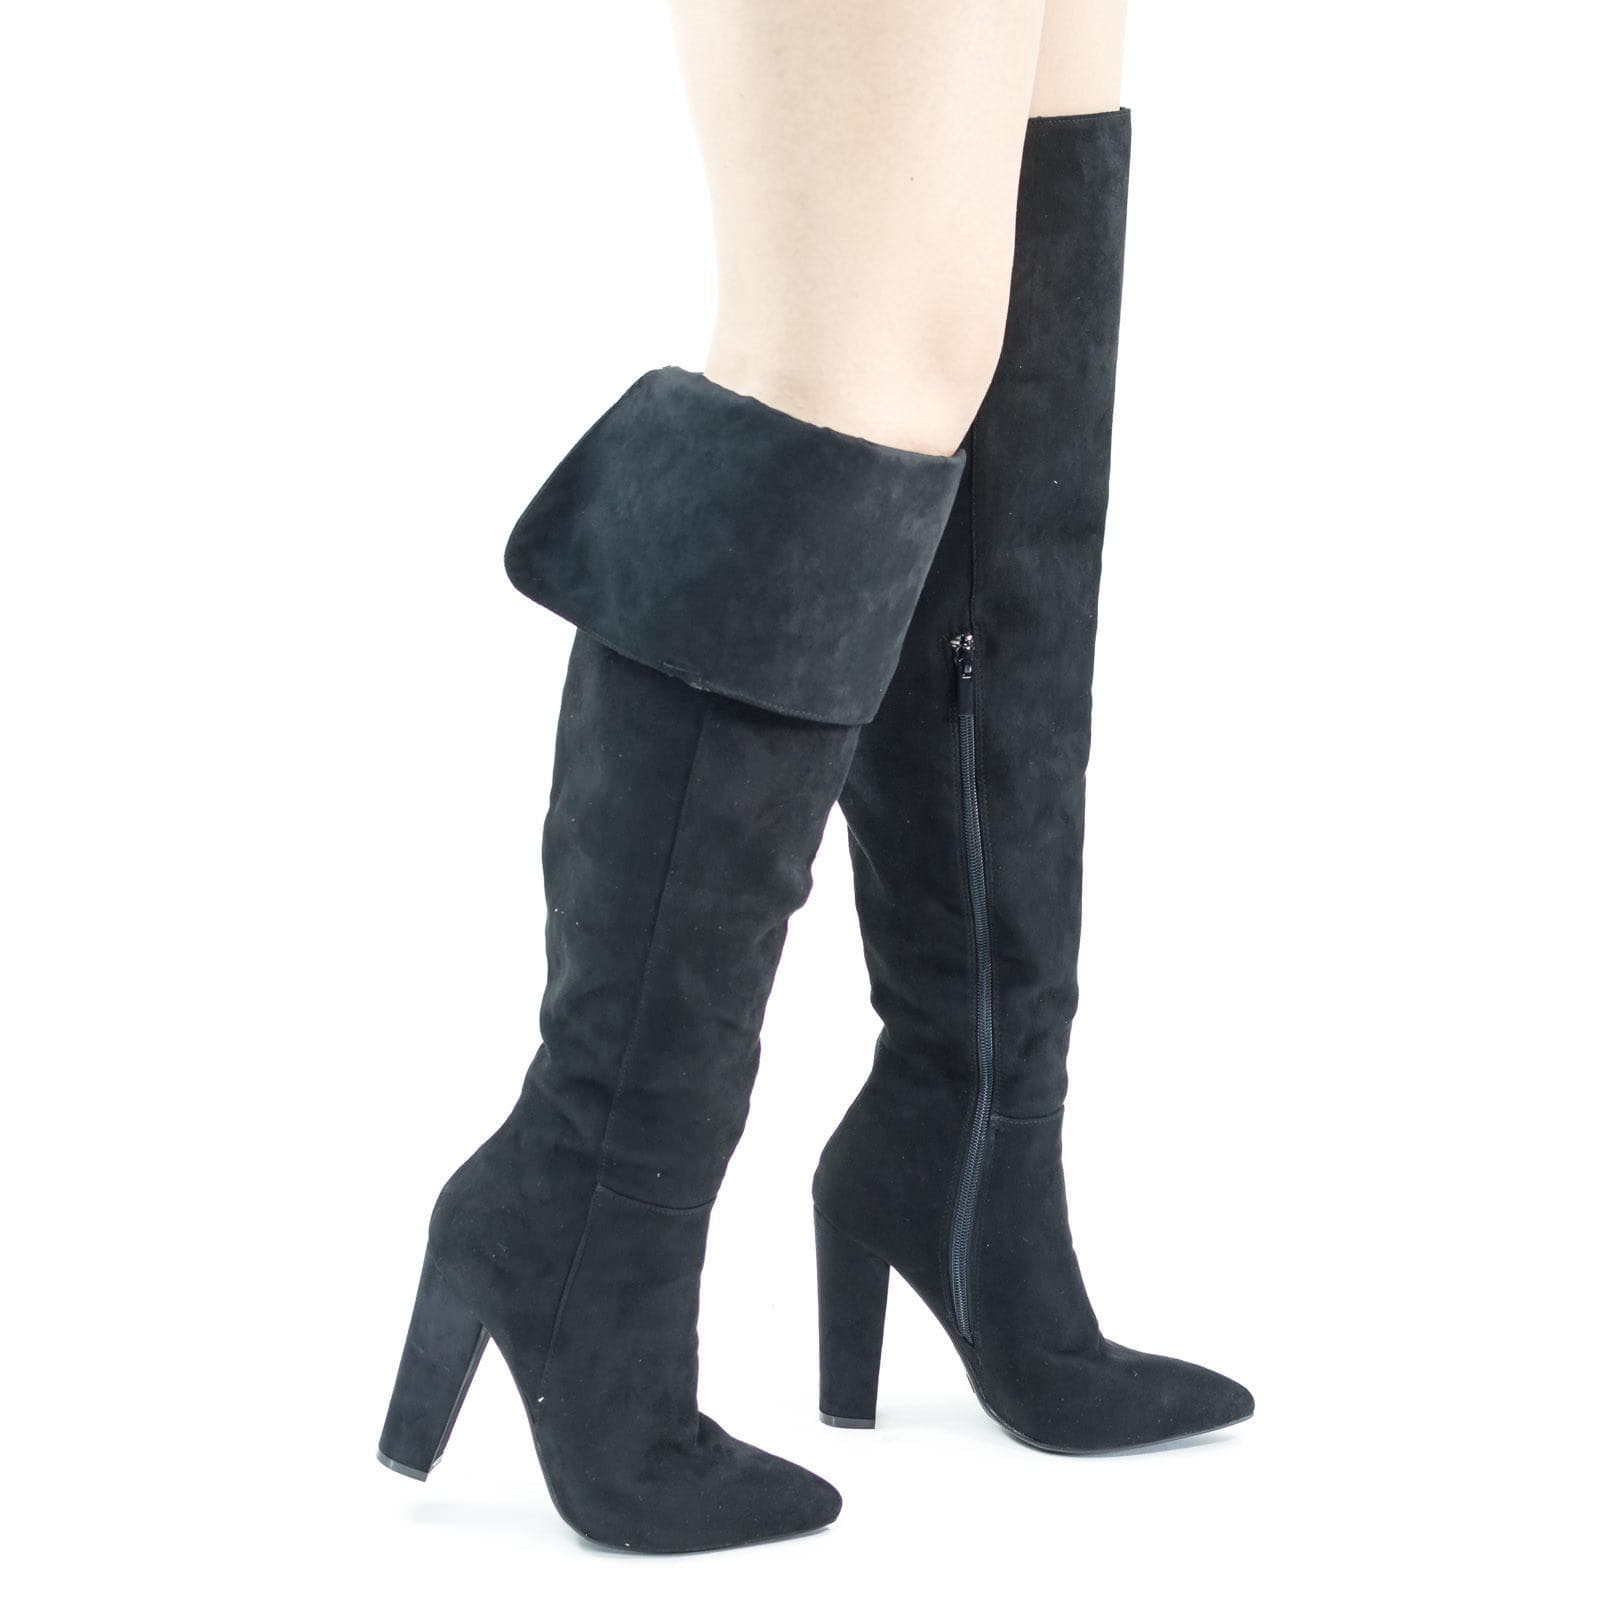 Madam37 BlkFs Faux Fur Lining Foldable Knee High Block High Heel Boot, Snakeskin